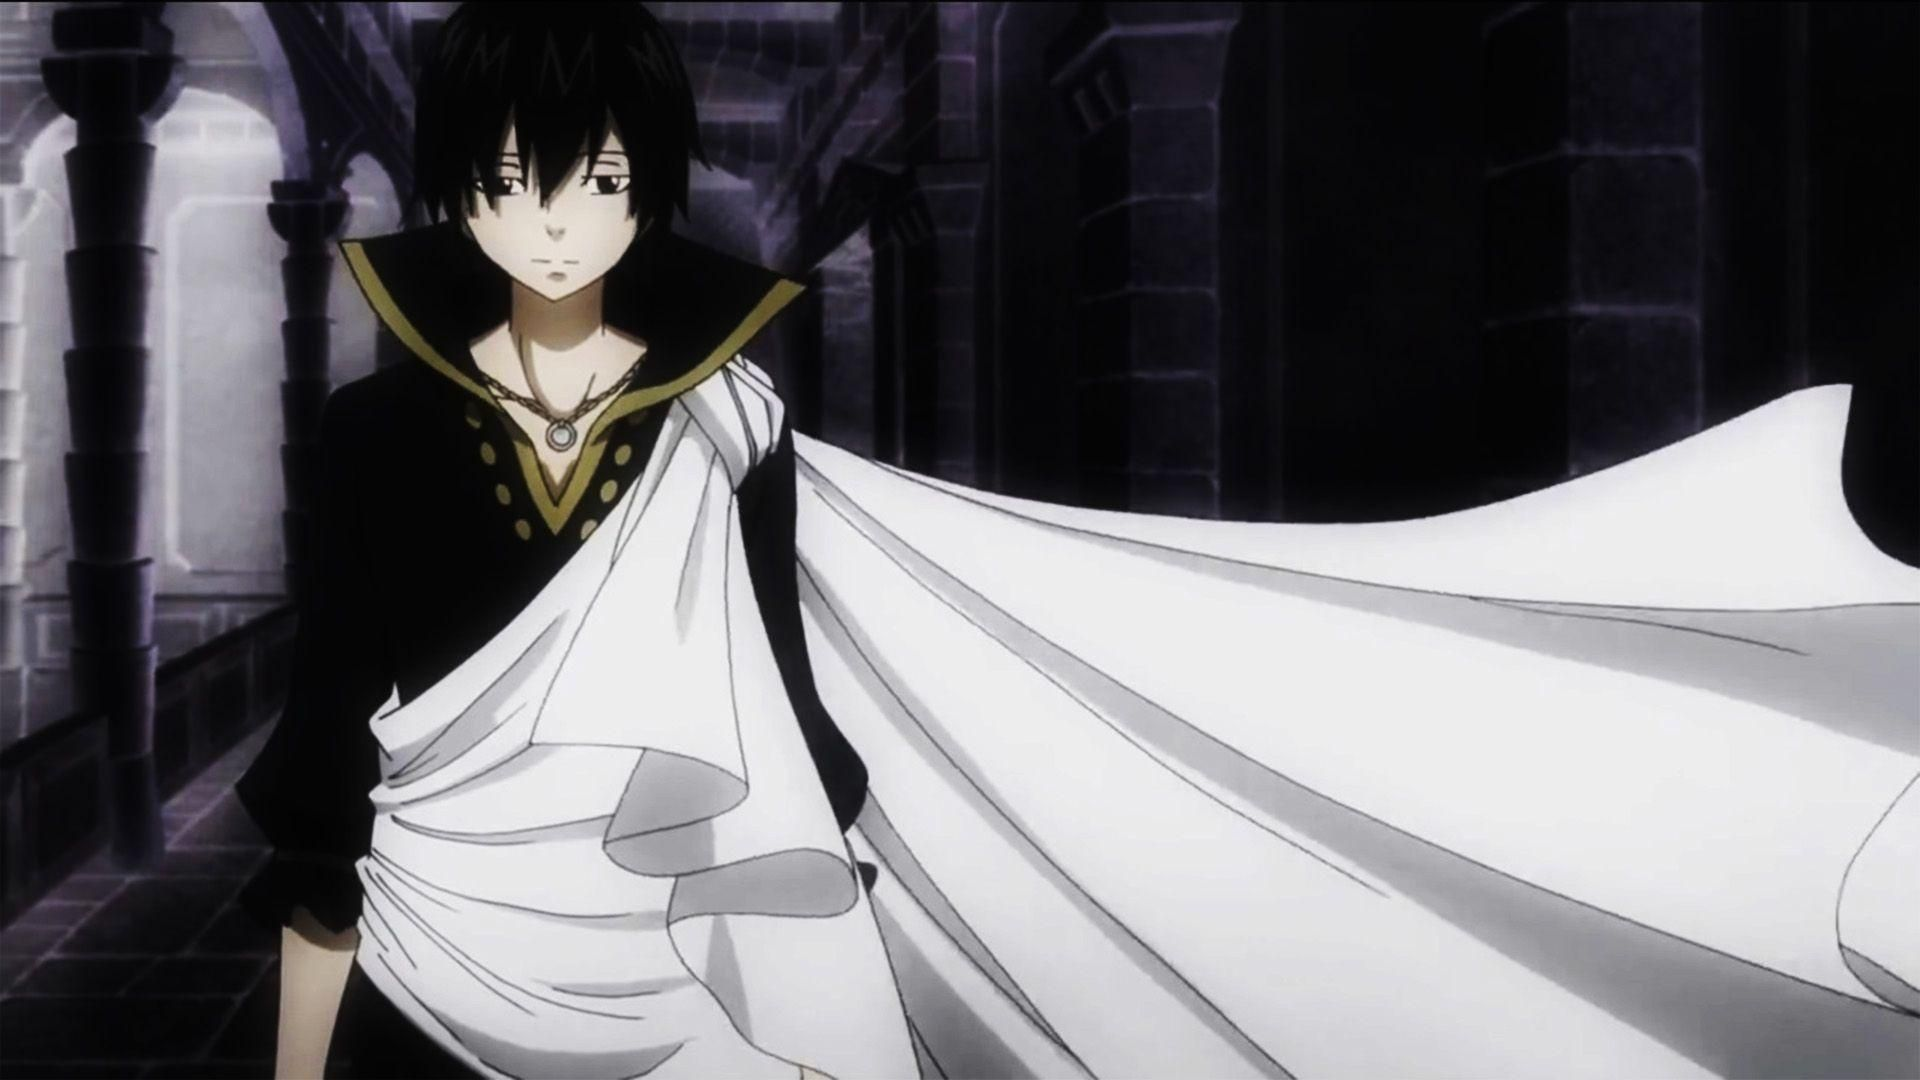 600 Wallpaper Hd Zeref Hd Terbaik Zeref Fairy Tail Zeref Zeref Dragneel